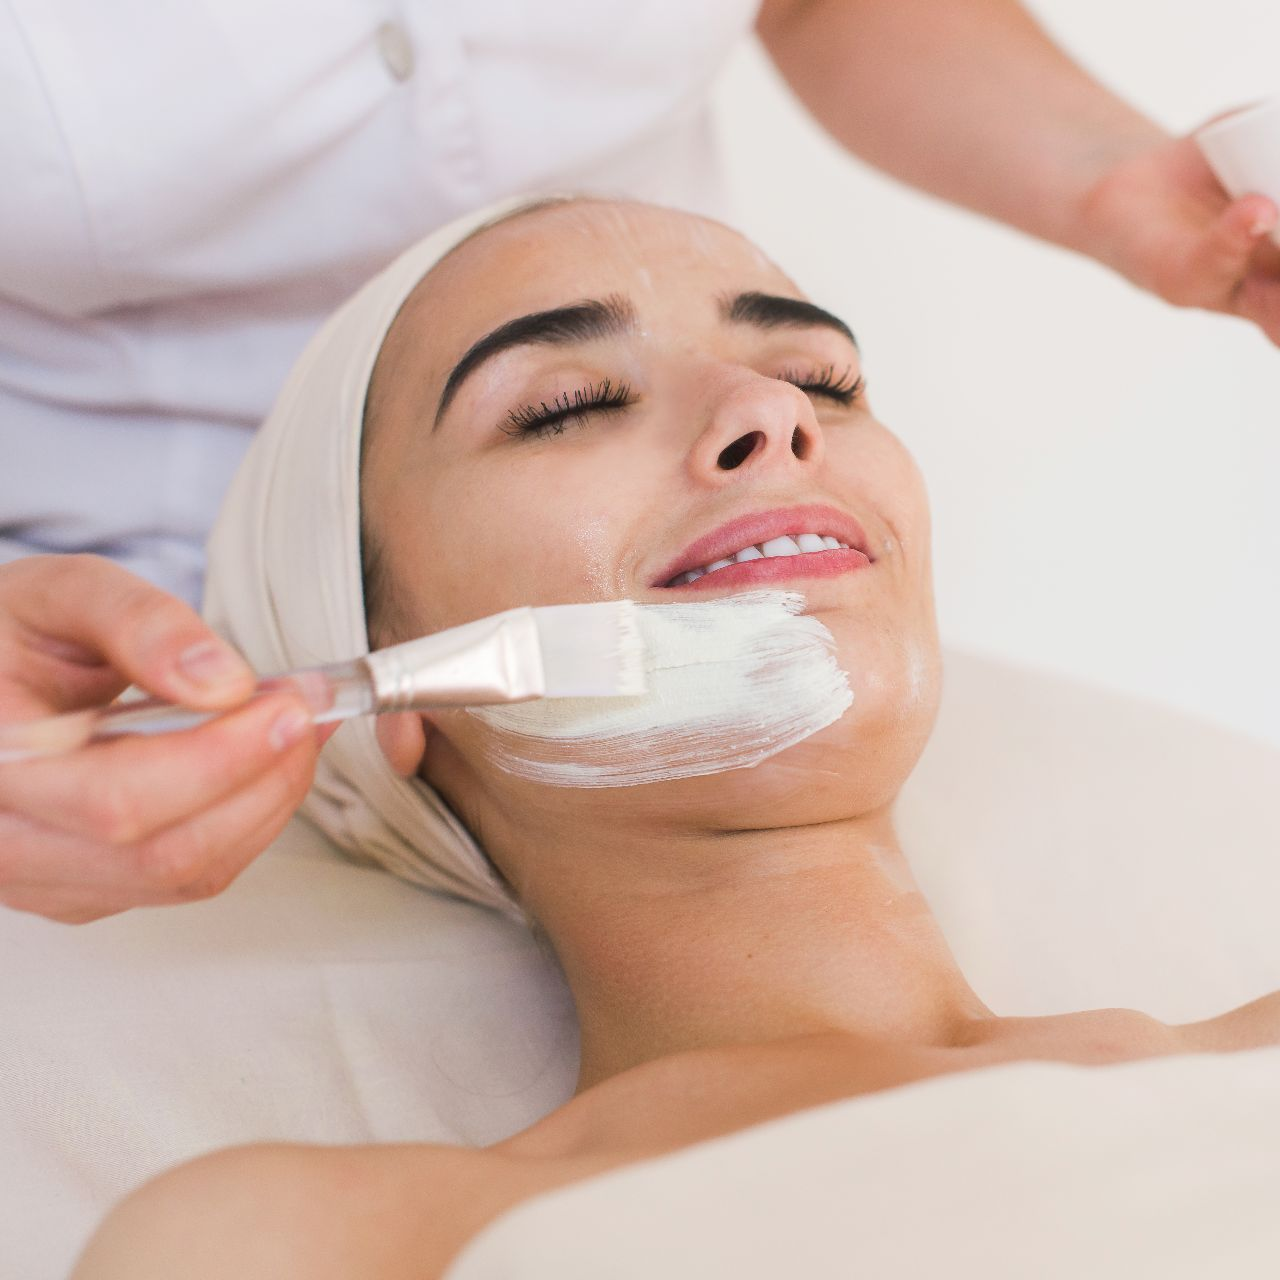 Chemical Peels - Cosmetic Dermatology - Dermo Aesthetic Surgery